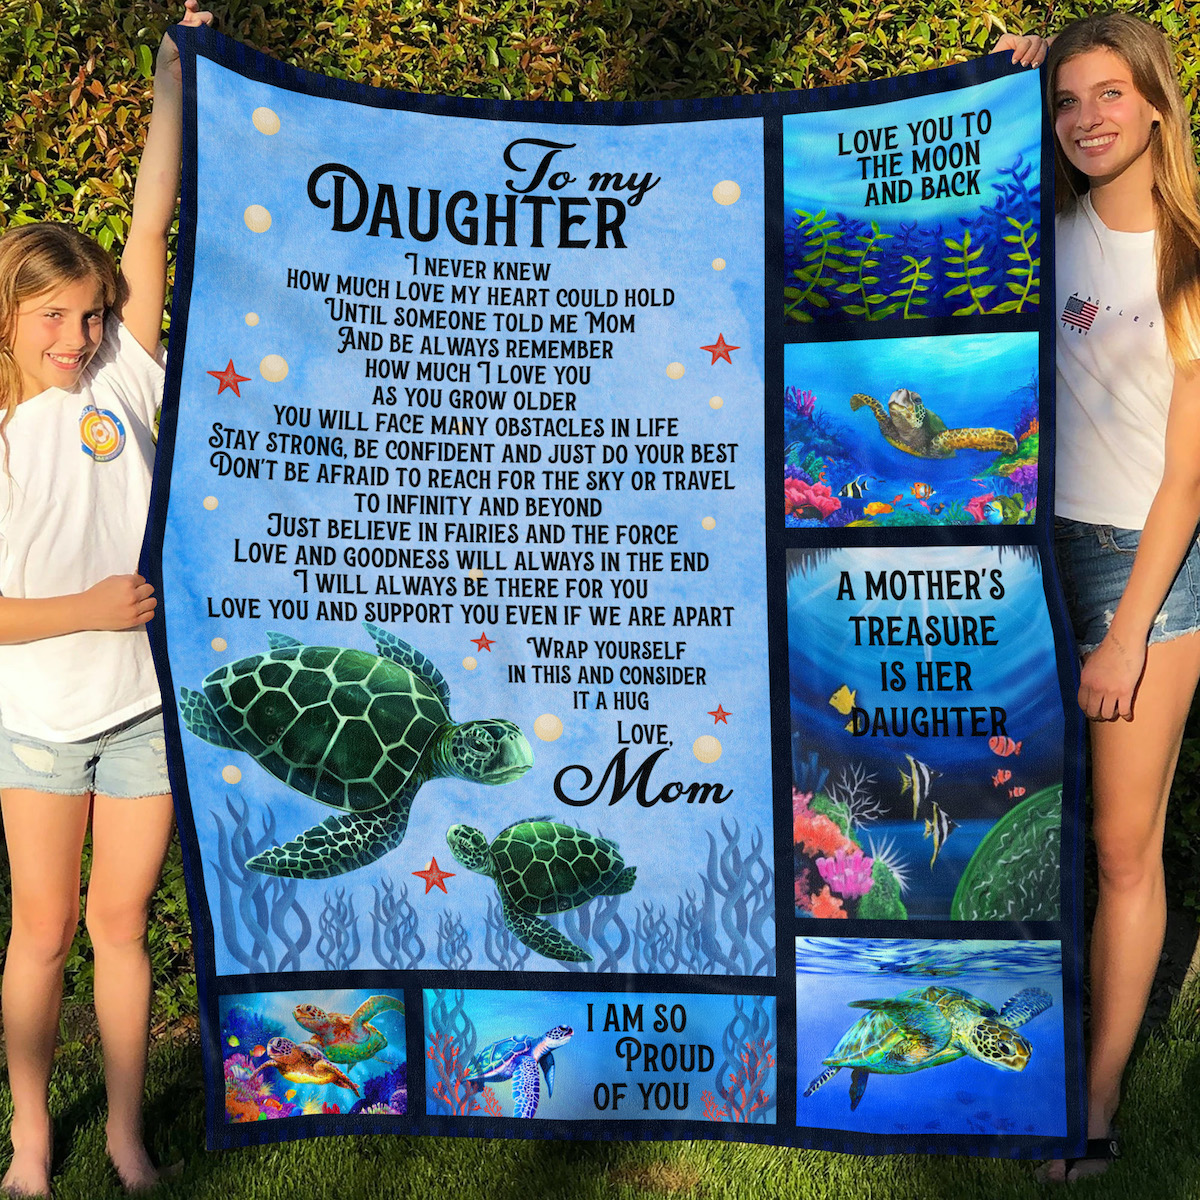 Funny Turtle Love Fleece Blanket For Daughter From Mom Sherpa Blankets Xmas Gift